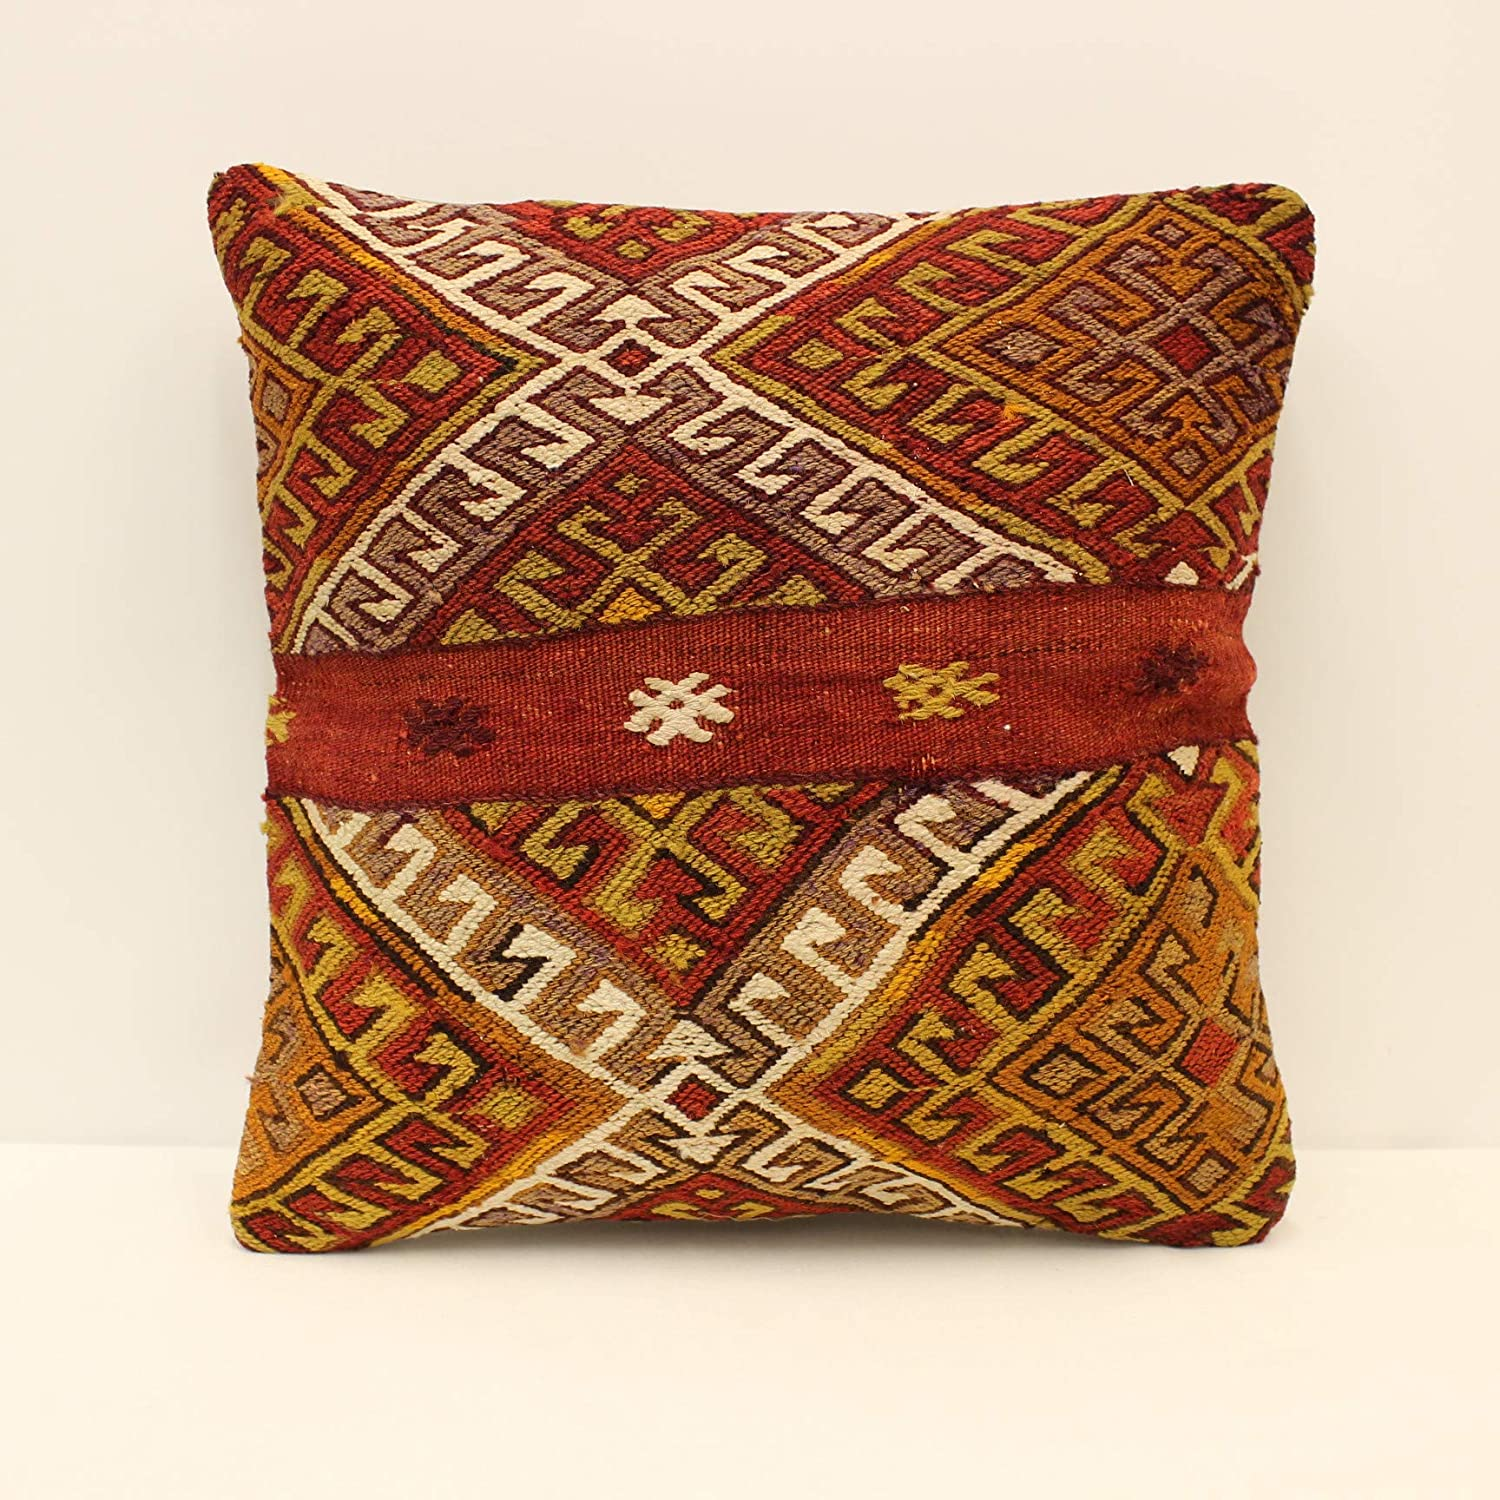 Turkish Kilim Pillow Cover 18x18 inches Home Throw Nashville-Davidson Mall New product Sofa P